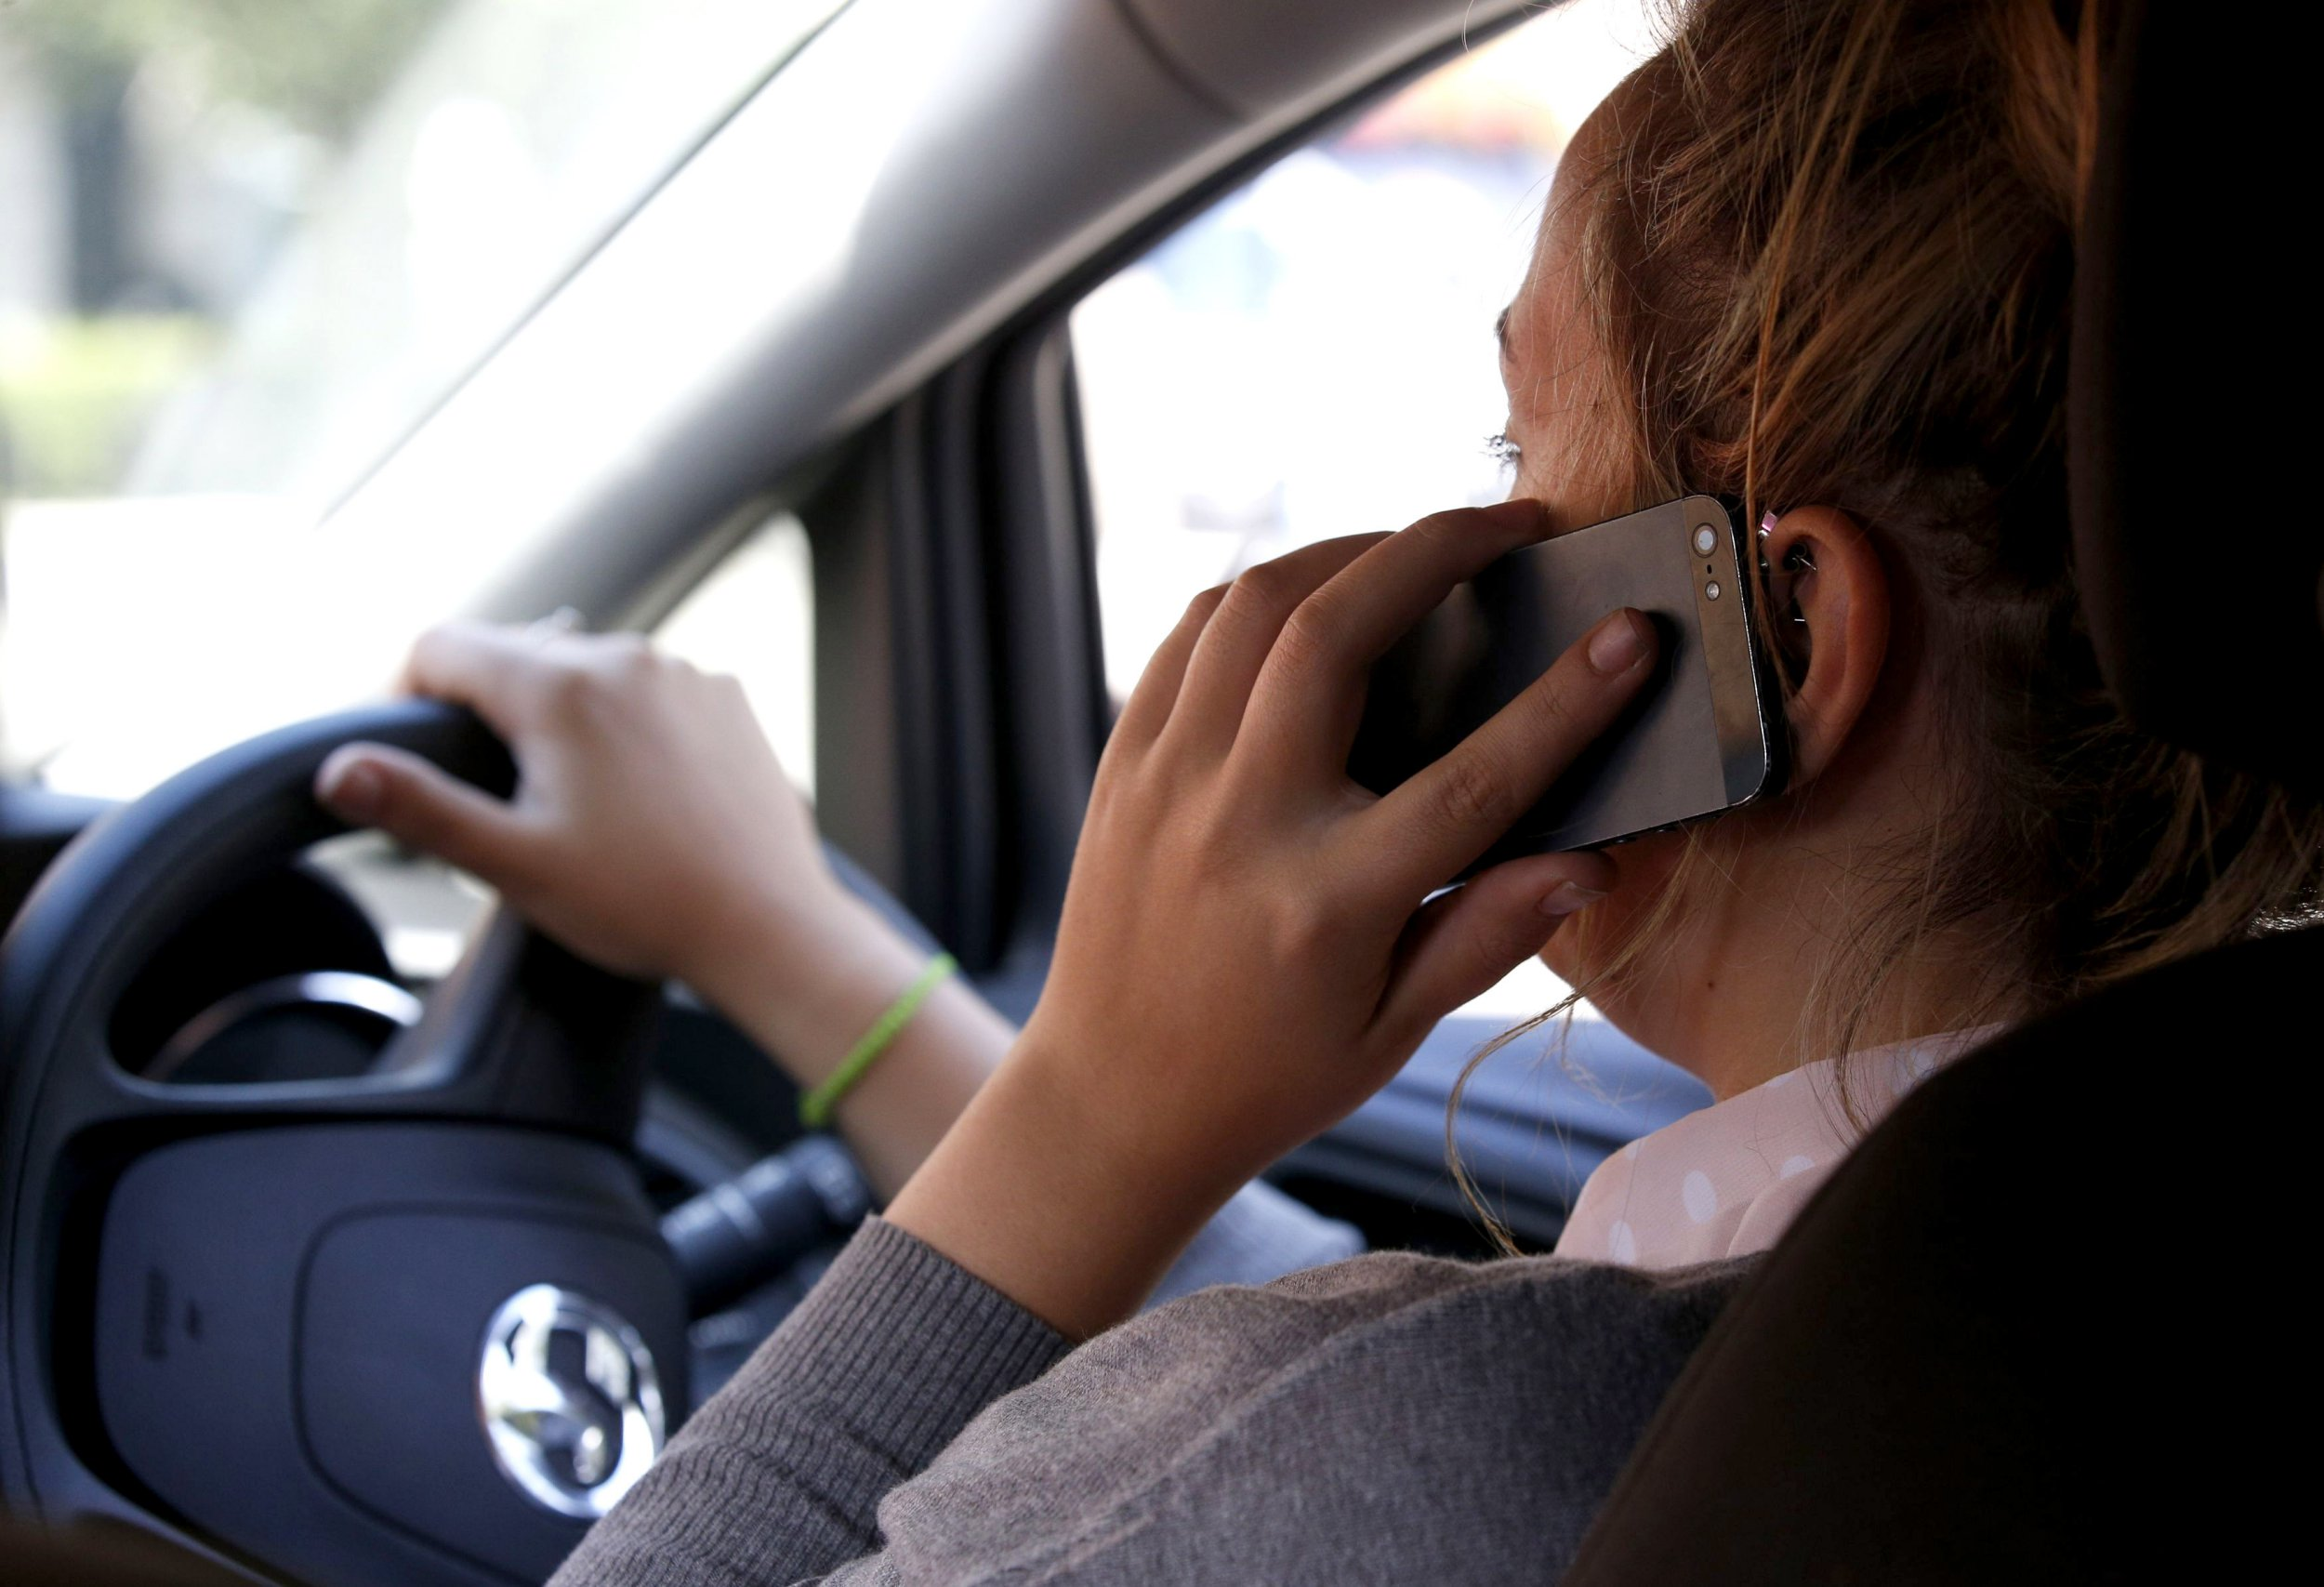 POSED BY MODEL File photo dated 13/08/14 of a woman using a mobile phone at the car wheel, as police data has shown that the number of motorists caught using a mobile phone illegally has almost halved since penalties for offenders were doubled. PRESS ASSOCIATION Photo. Issue date: Thursday March 1, 2018. The new figures suggest that around 39,000 fixed penalty notices (FPNs) were issued to drivers between March and December last year compared with 74,000 during the same period in 2016. See PA story TRANSPORT Mobiles. Photo credit should read: Jonathan Brady/PA Wire